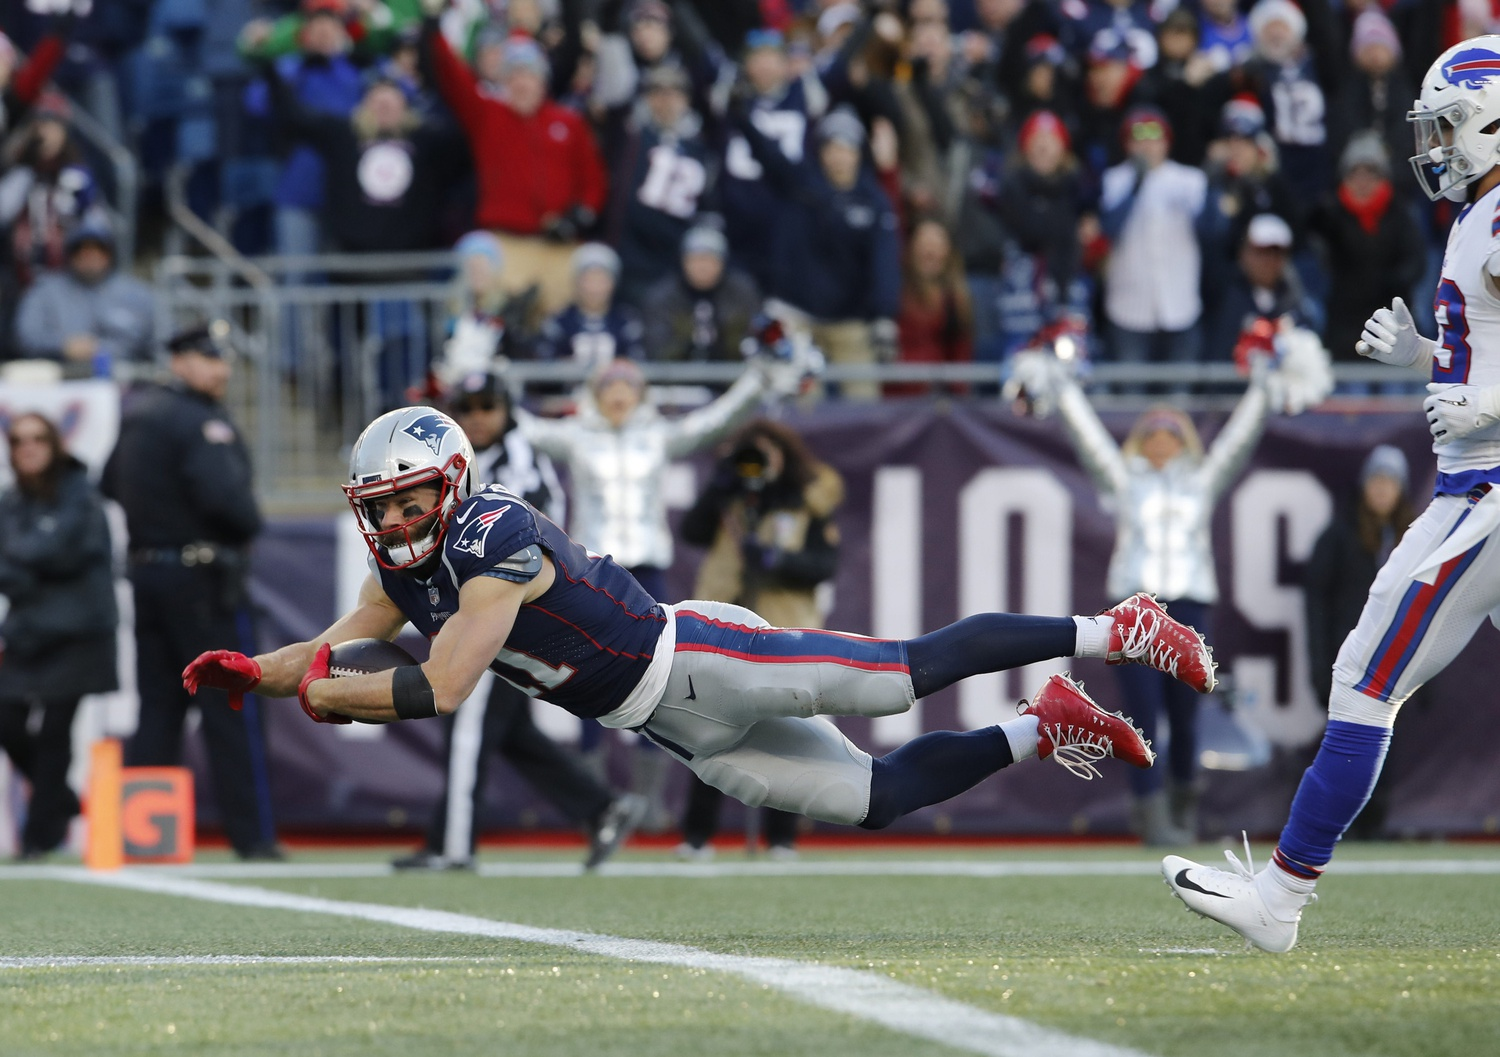 The Media Column: This time of year, all we talk about is the Patriots. Is it overkill?